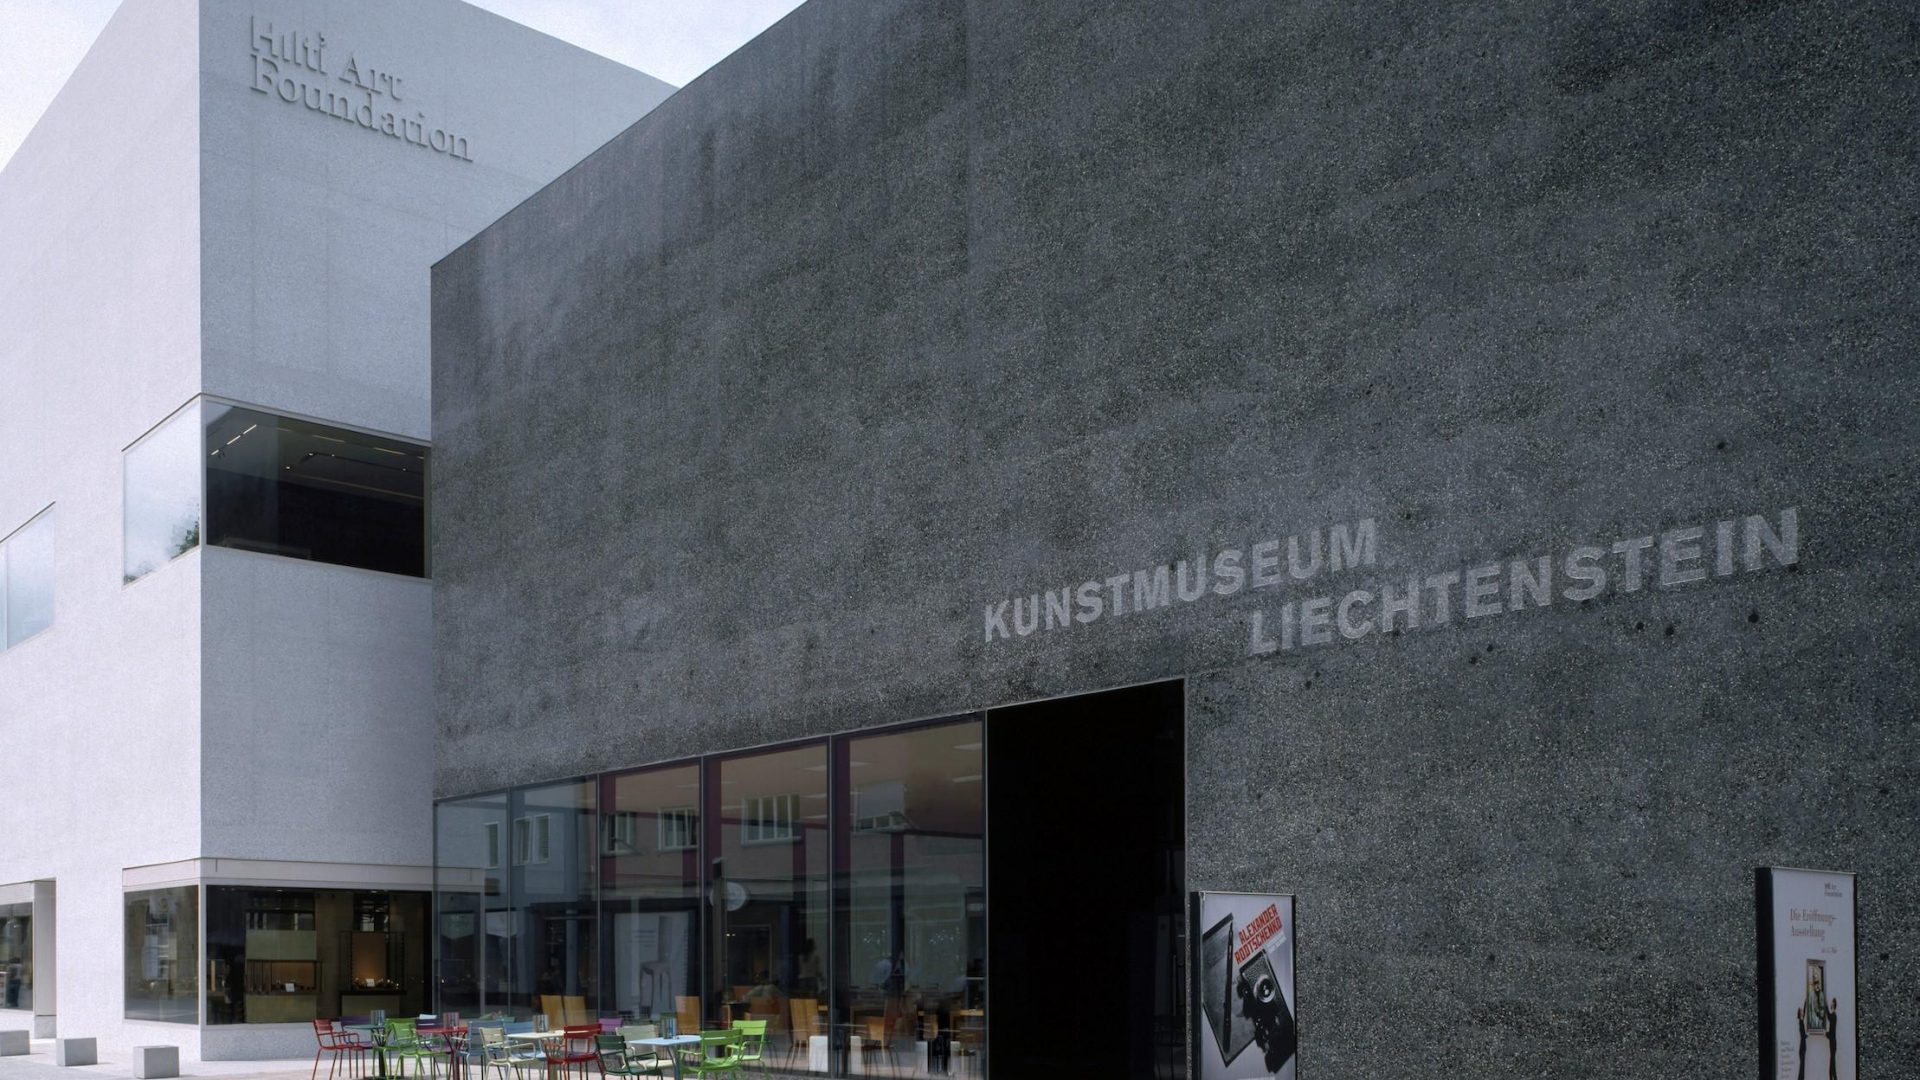 Kunstmuseum Liechtenstein - Hilti Art Foundation